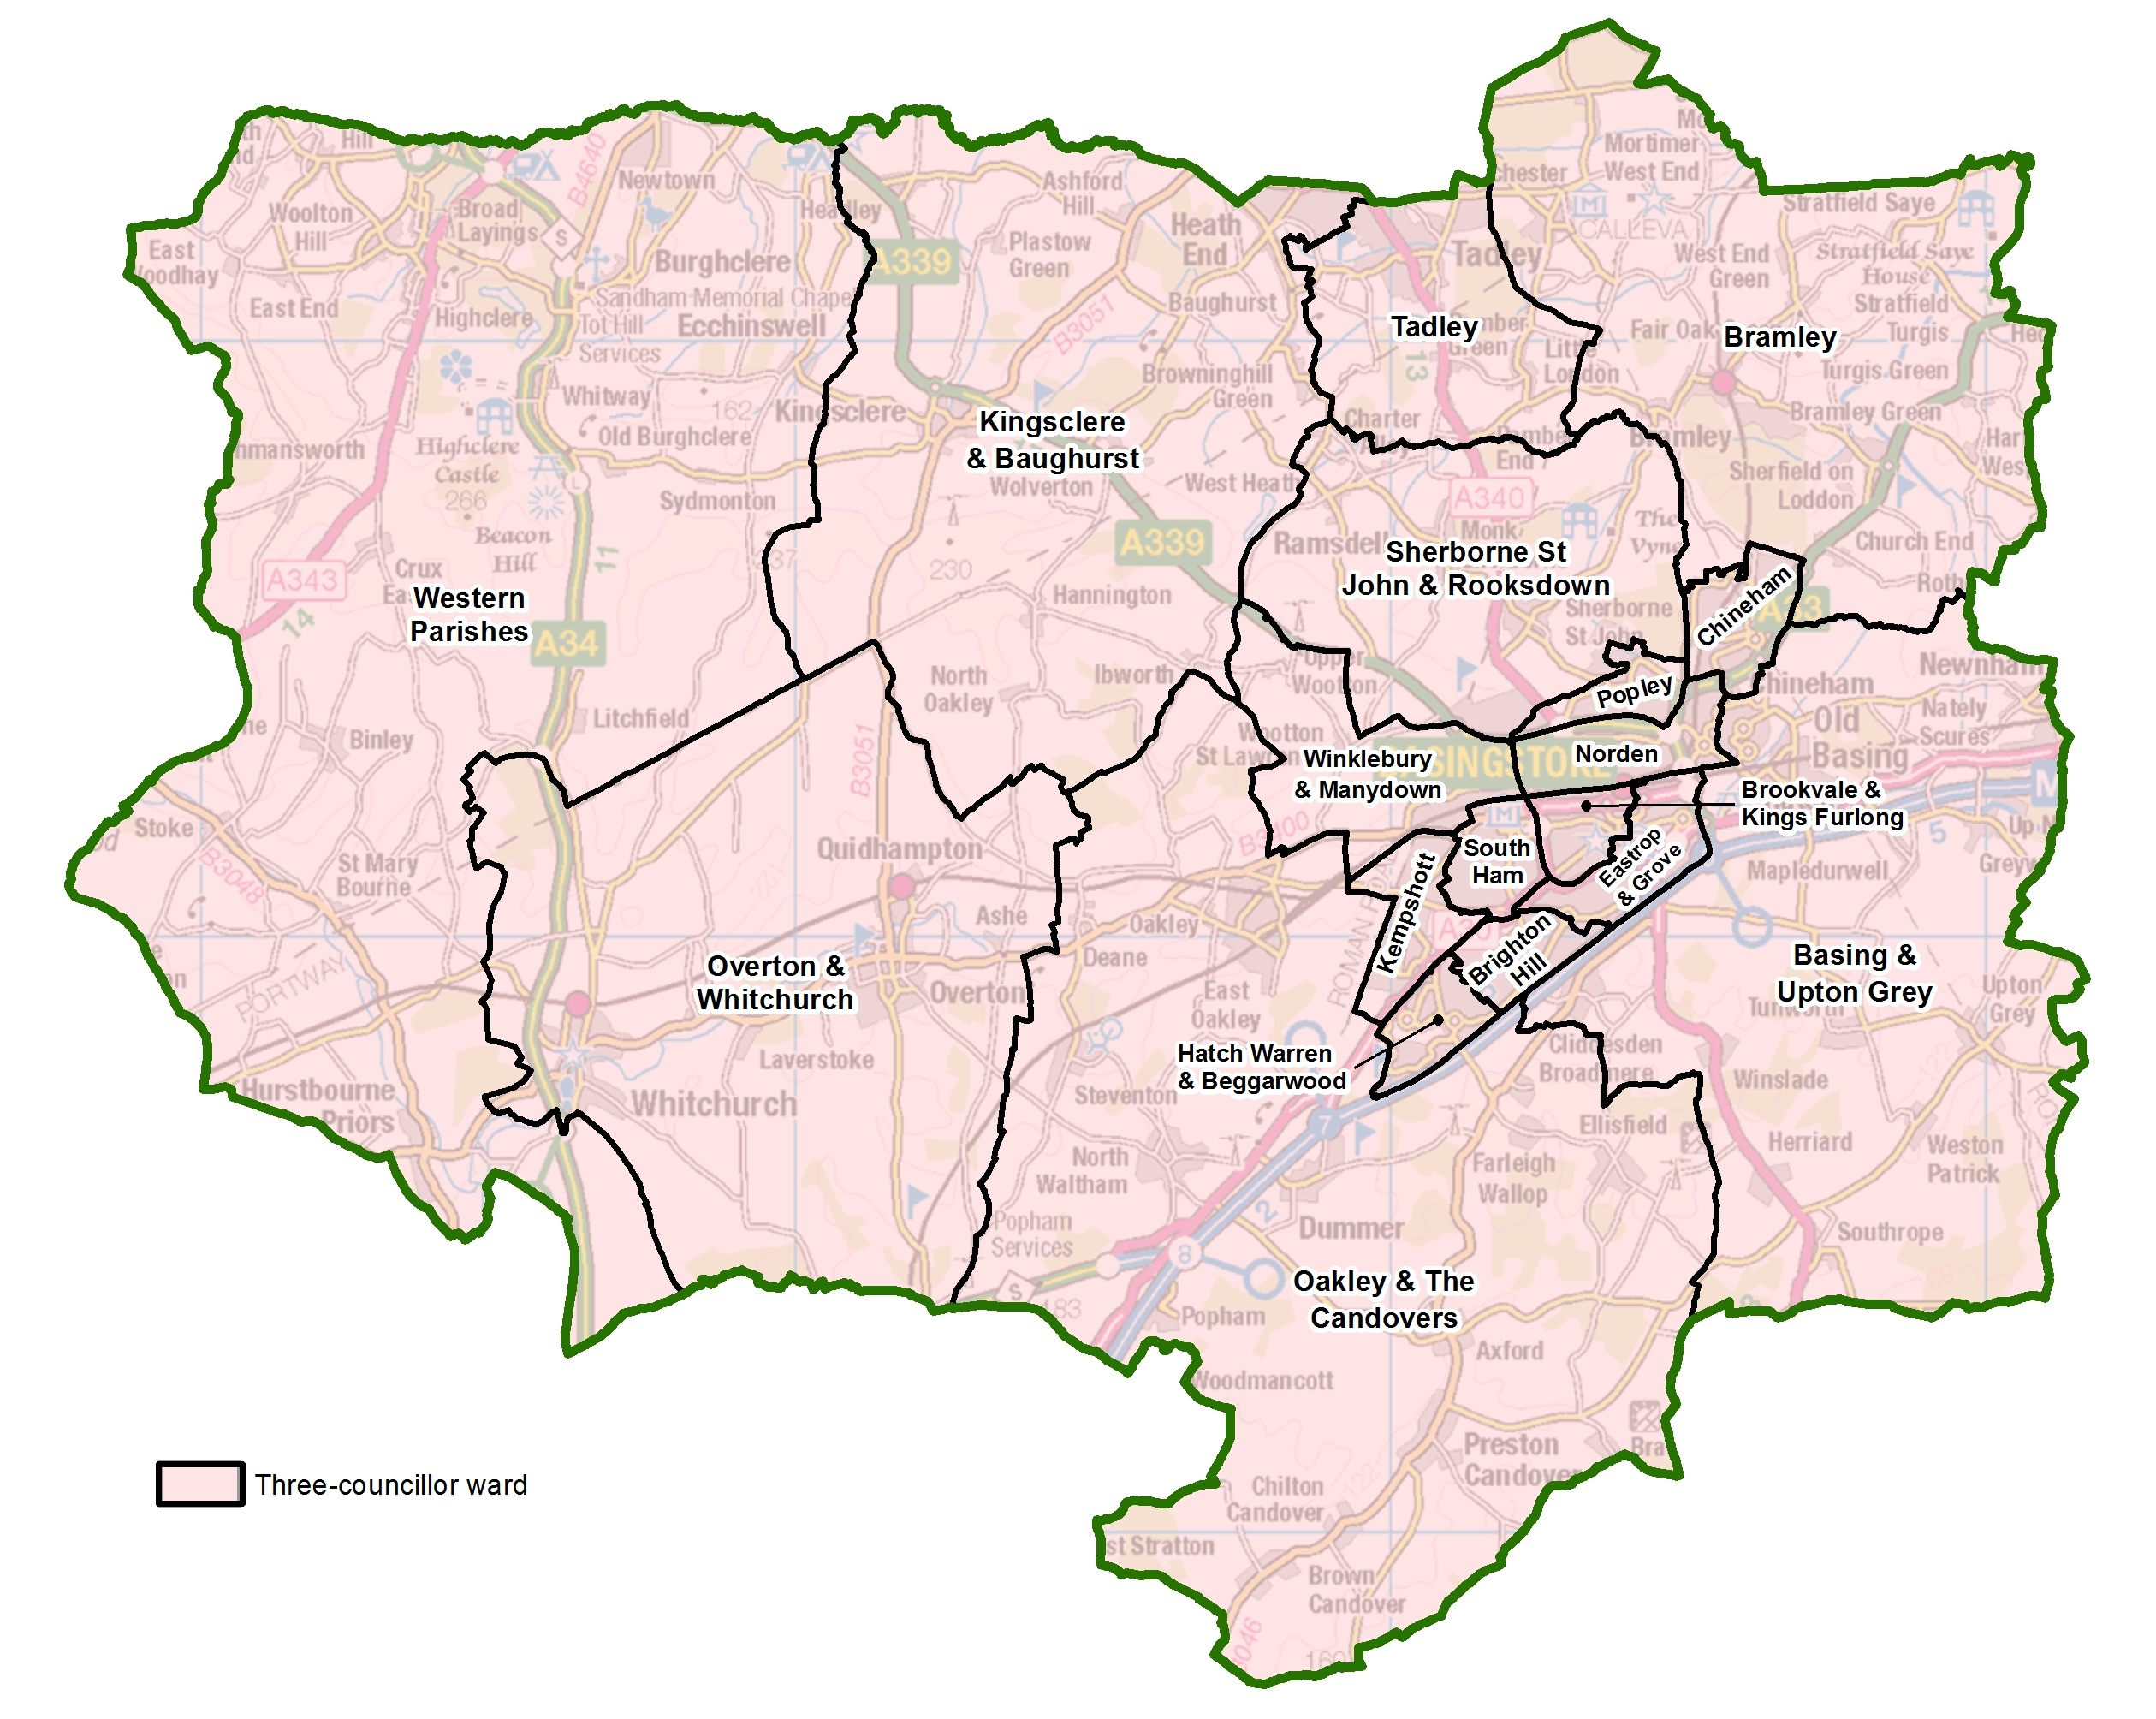 Map Of Basingstoke Have your say on new political map of Basingstoke and Deane